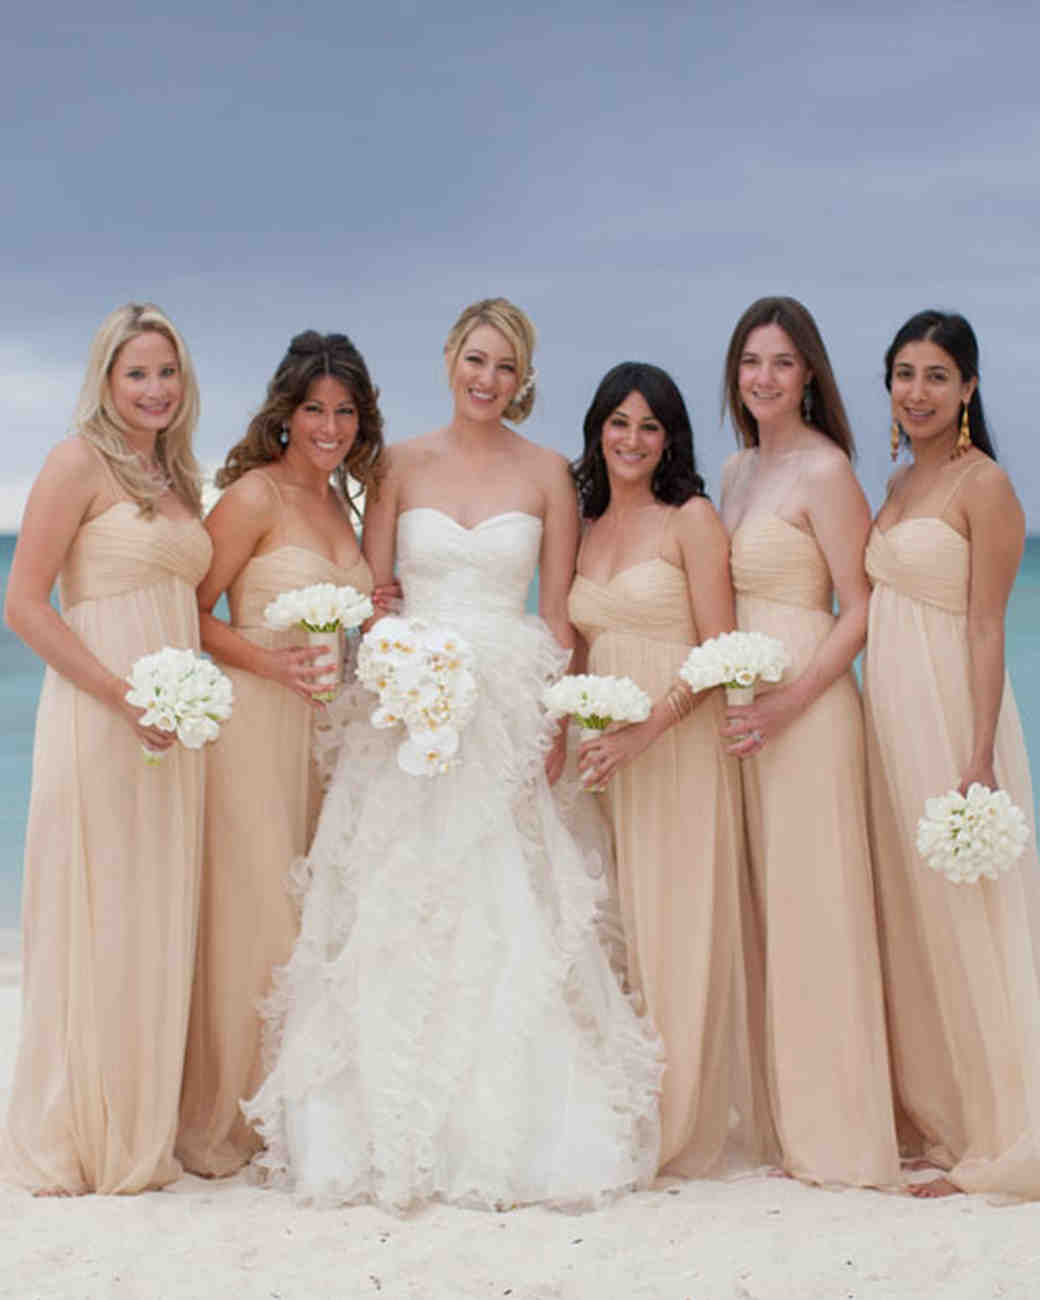 A Formal Destination Wedding On The Beach In Turks And Caicos | Martha  Stewart Weddings